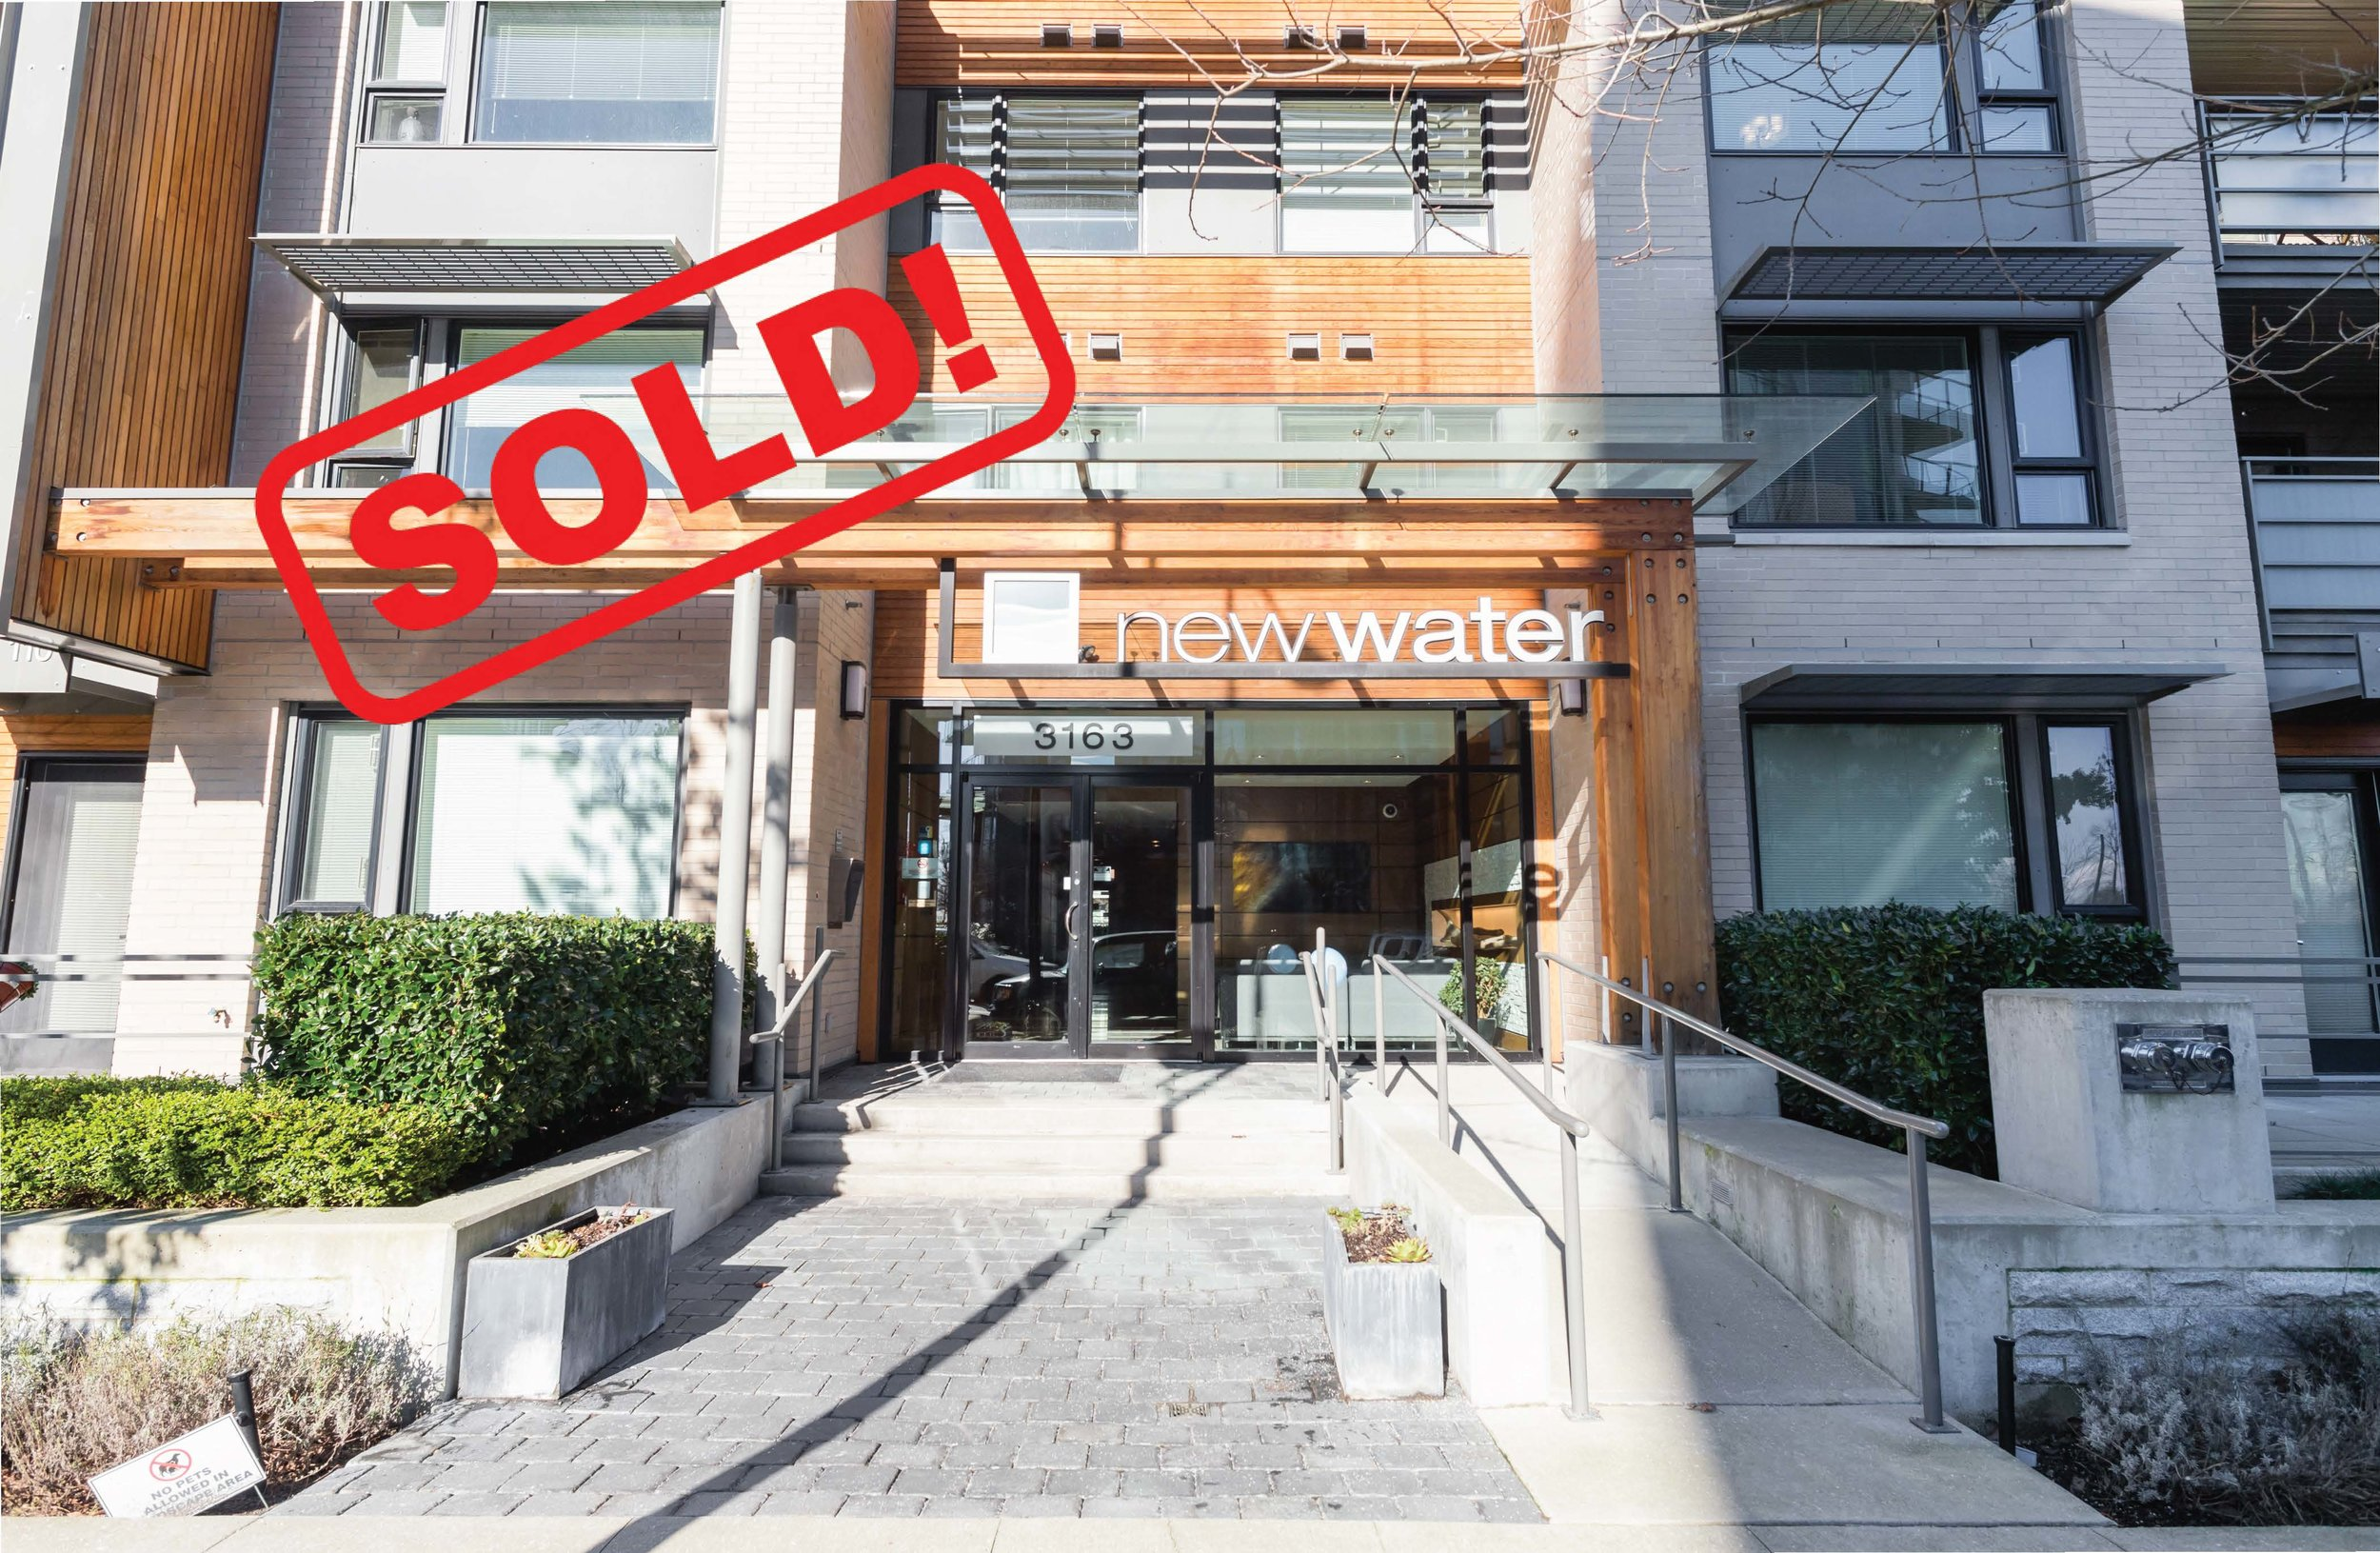 312-3163 RIVERWALK AVENUE     SOLD FOR: $750,000  2 BED | 2 BATH | 945 SF